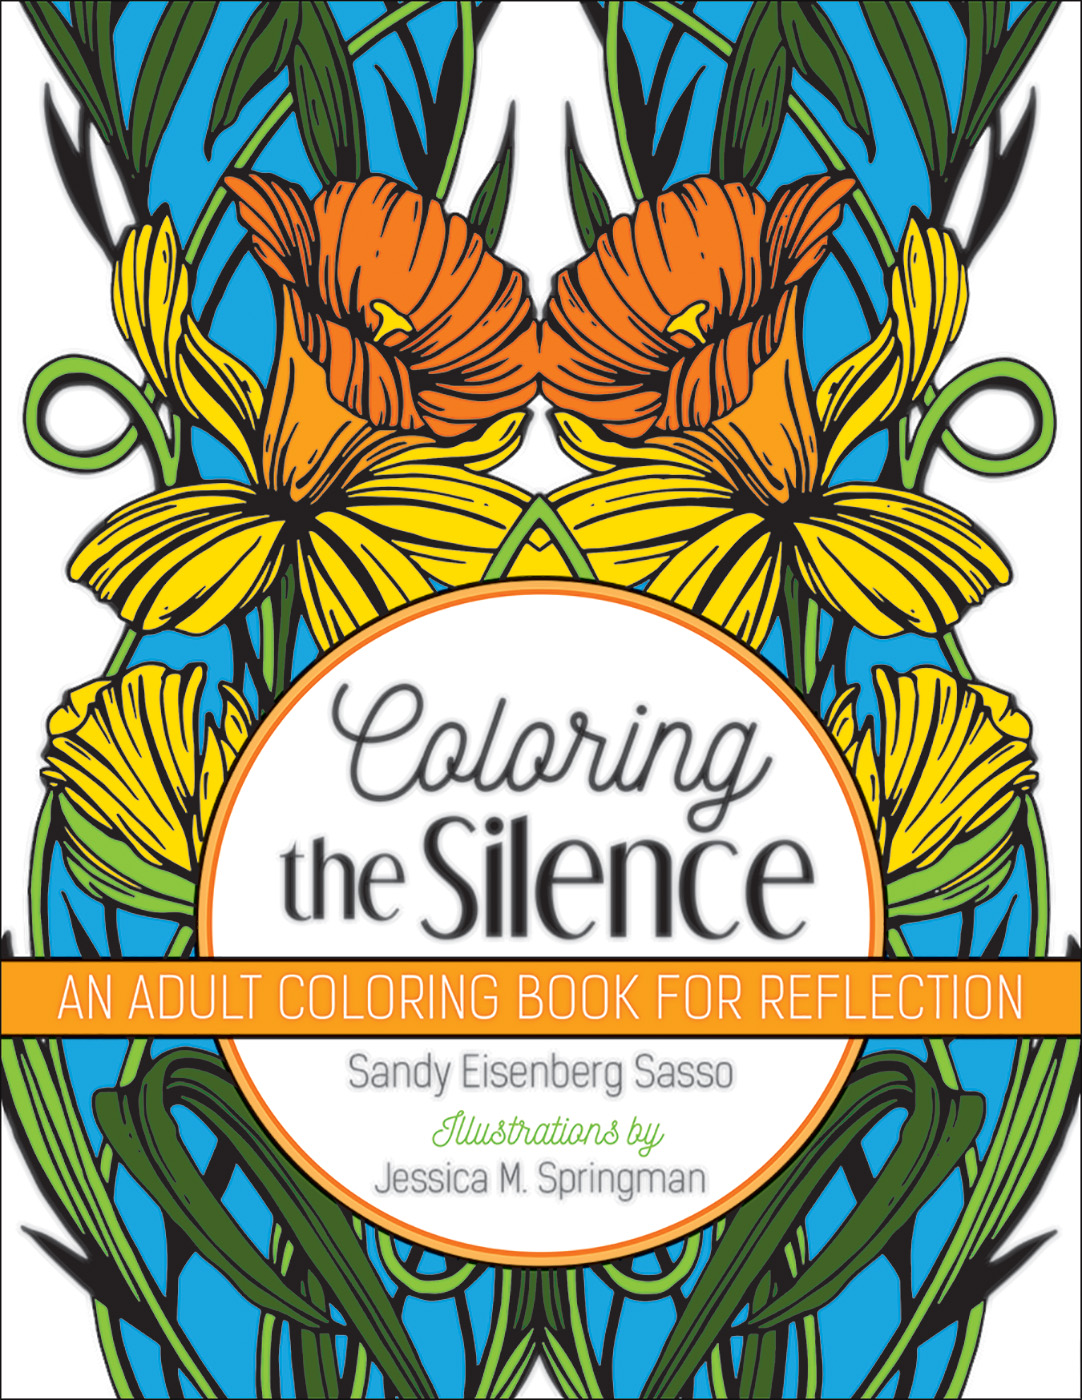 Coloring the Silence